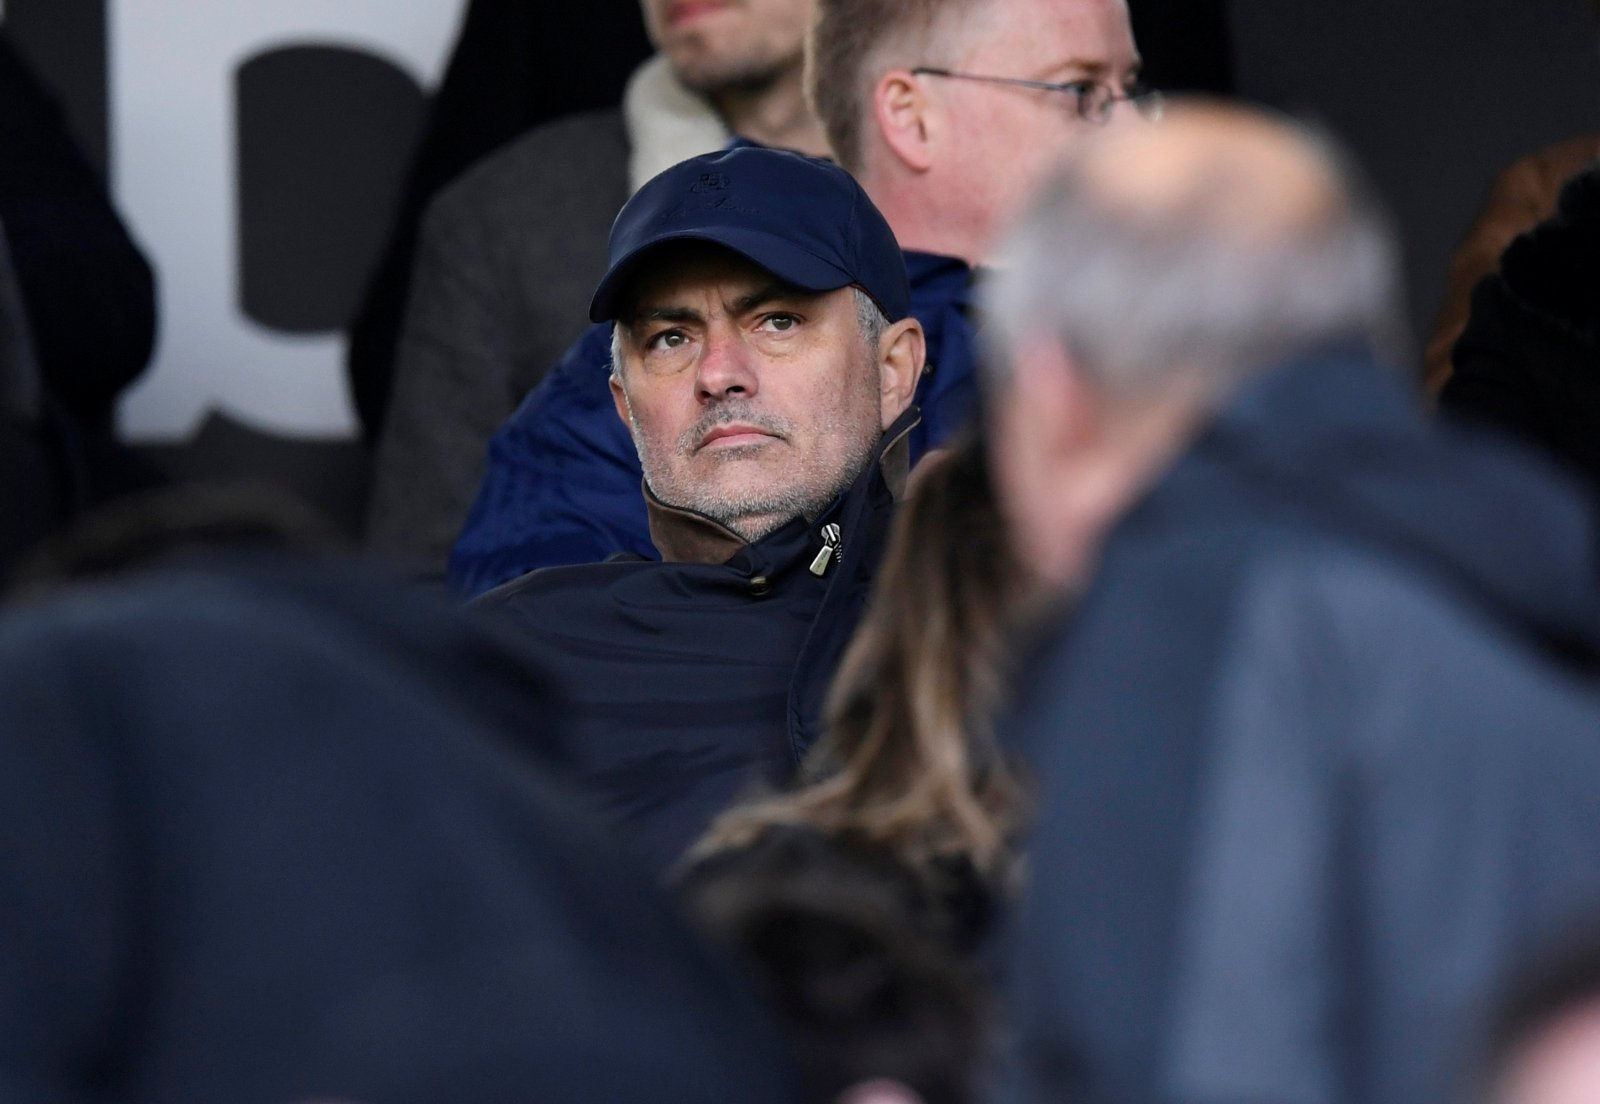 Arsenal: Fans do not want Jose Mourinho as their next manager